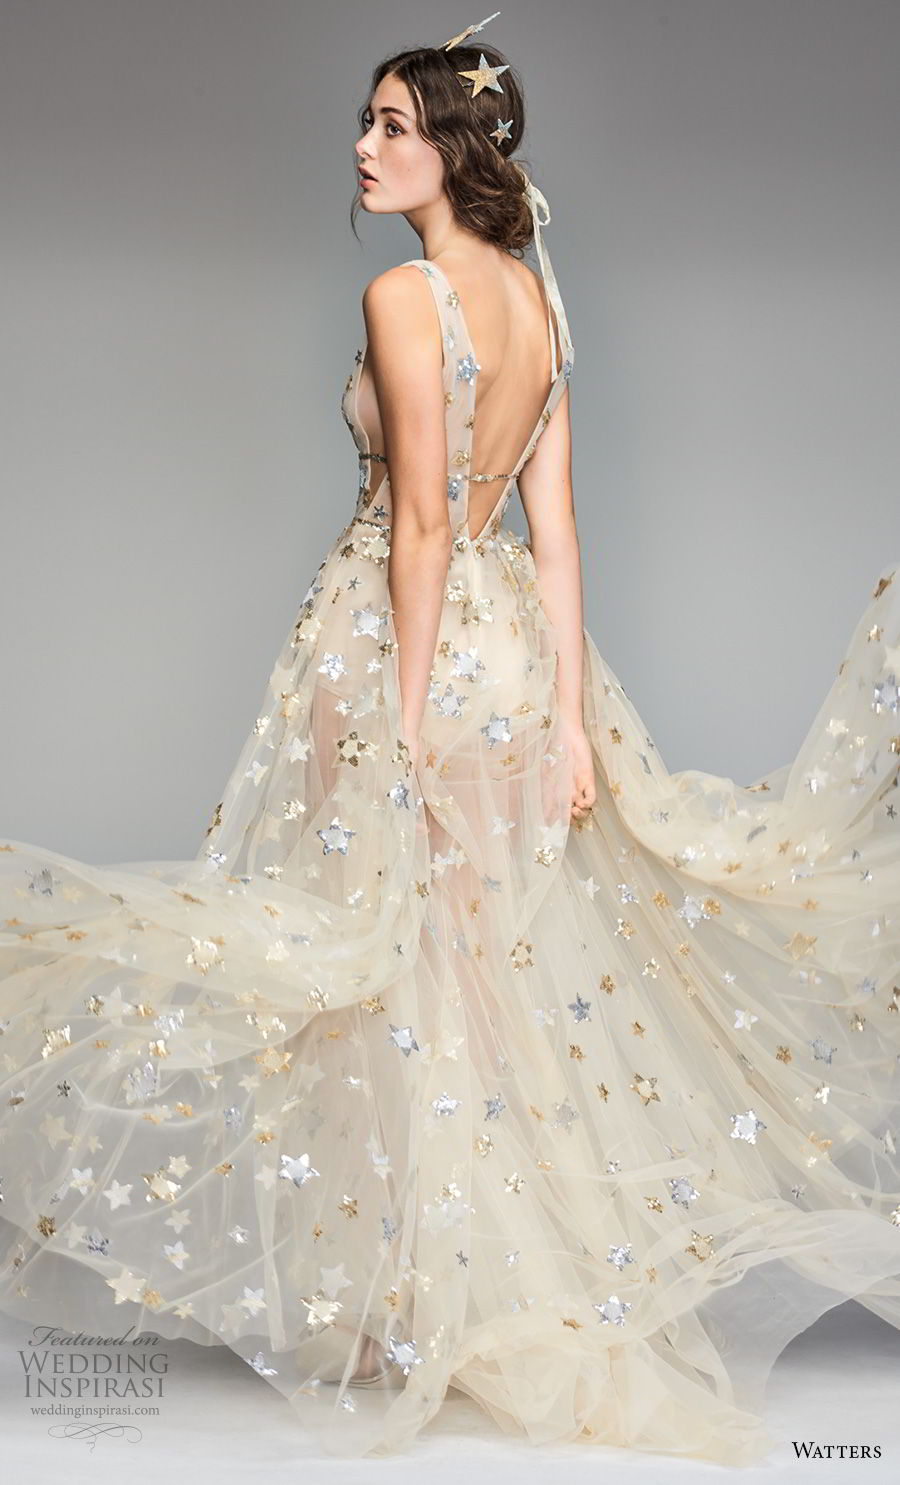 willow by watters spring 2018 sleeveless deep v neck full embellishment romantic gold soft a line wedding dress low v back sweep train (5) bv